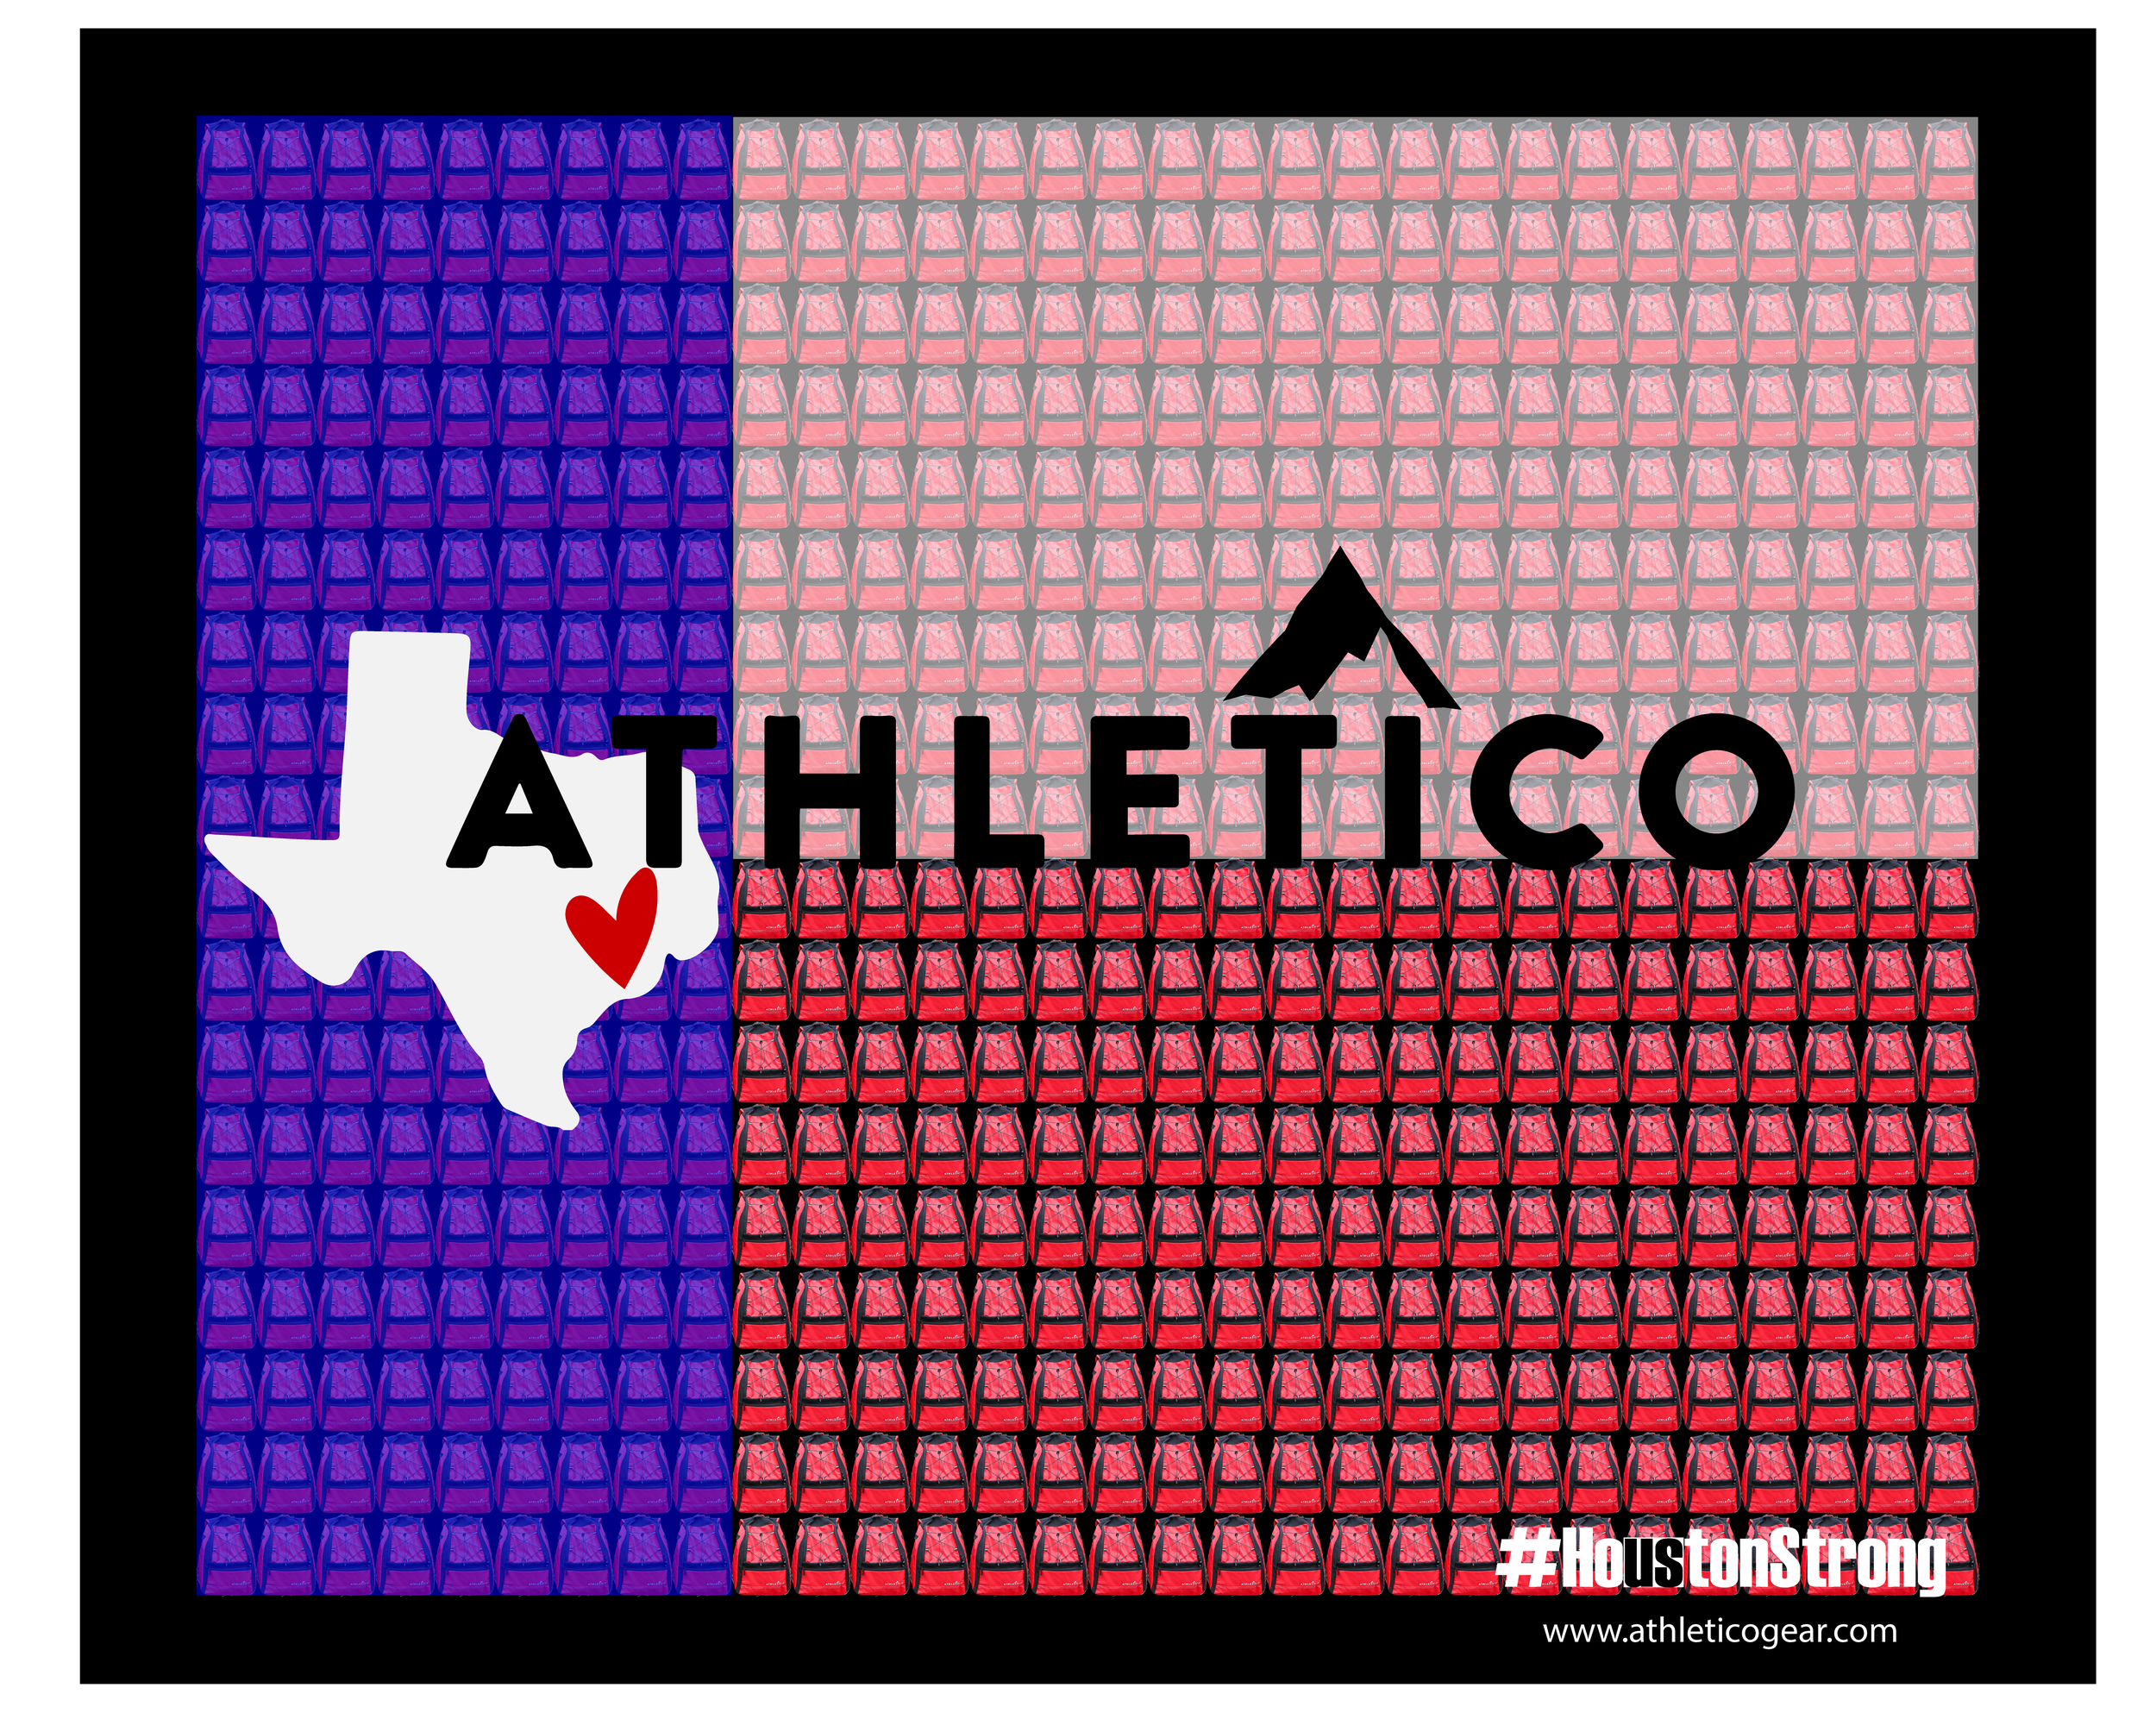 HoustonStrong-01.png